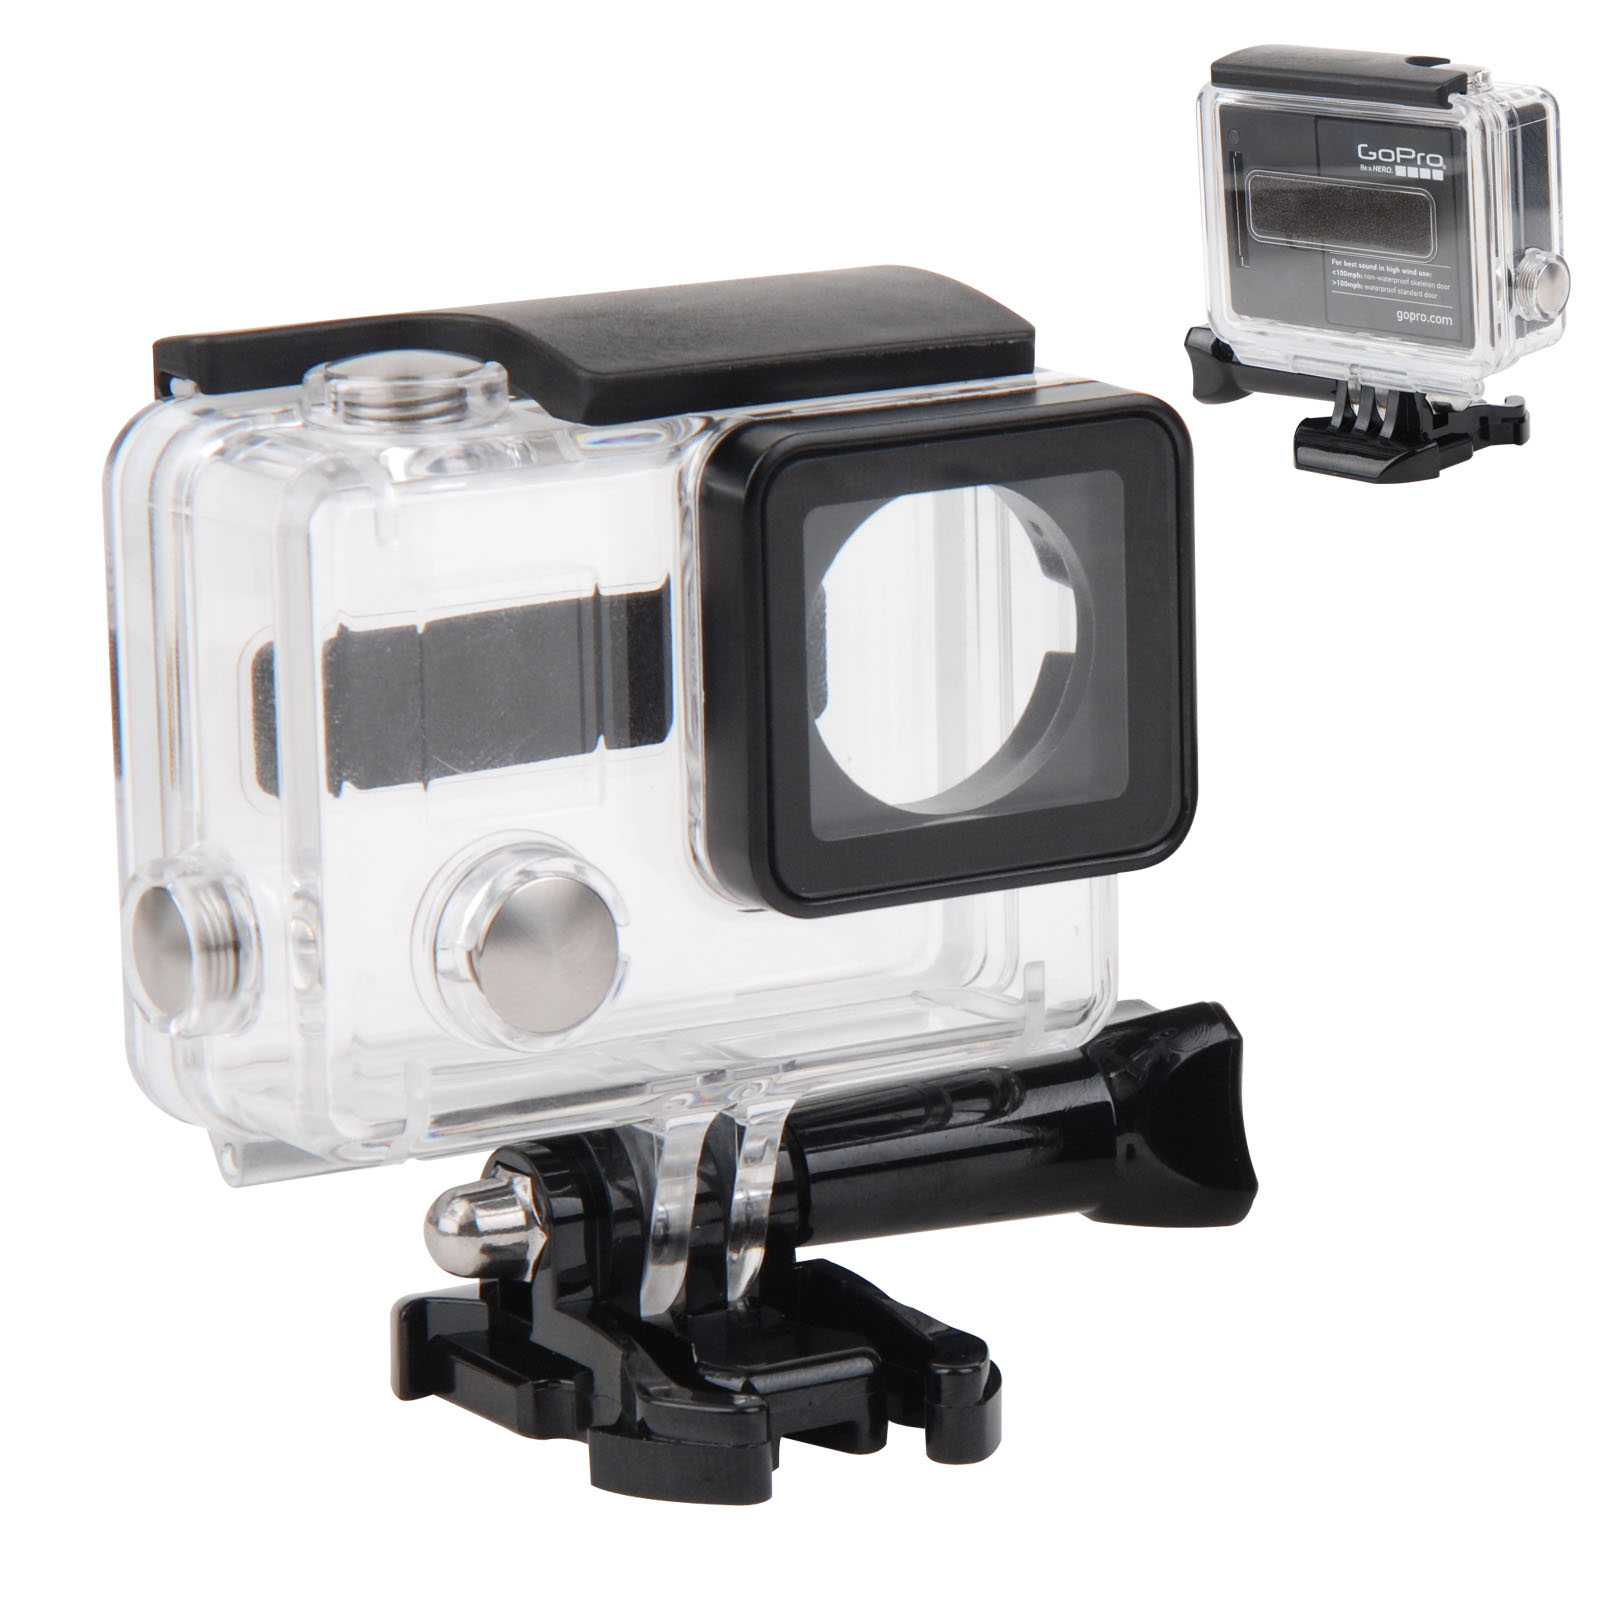 Full Sealed Transparent Waterproof Diving Protective Housing Case for GoPro Hero 3+